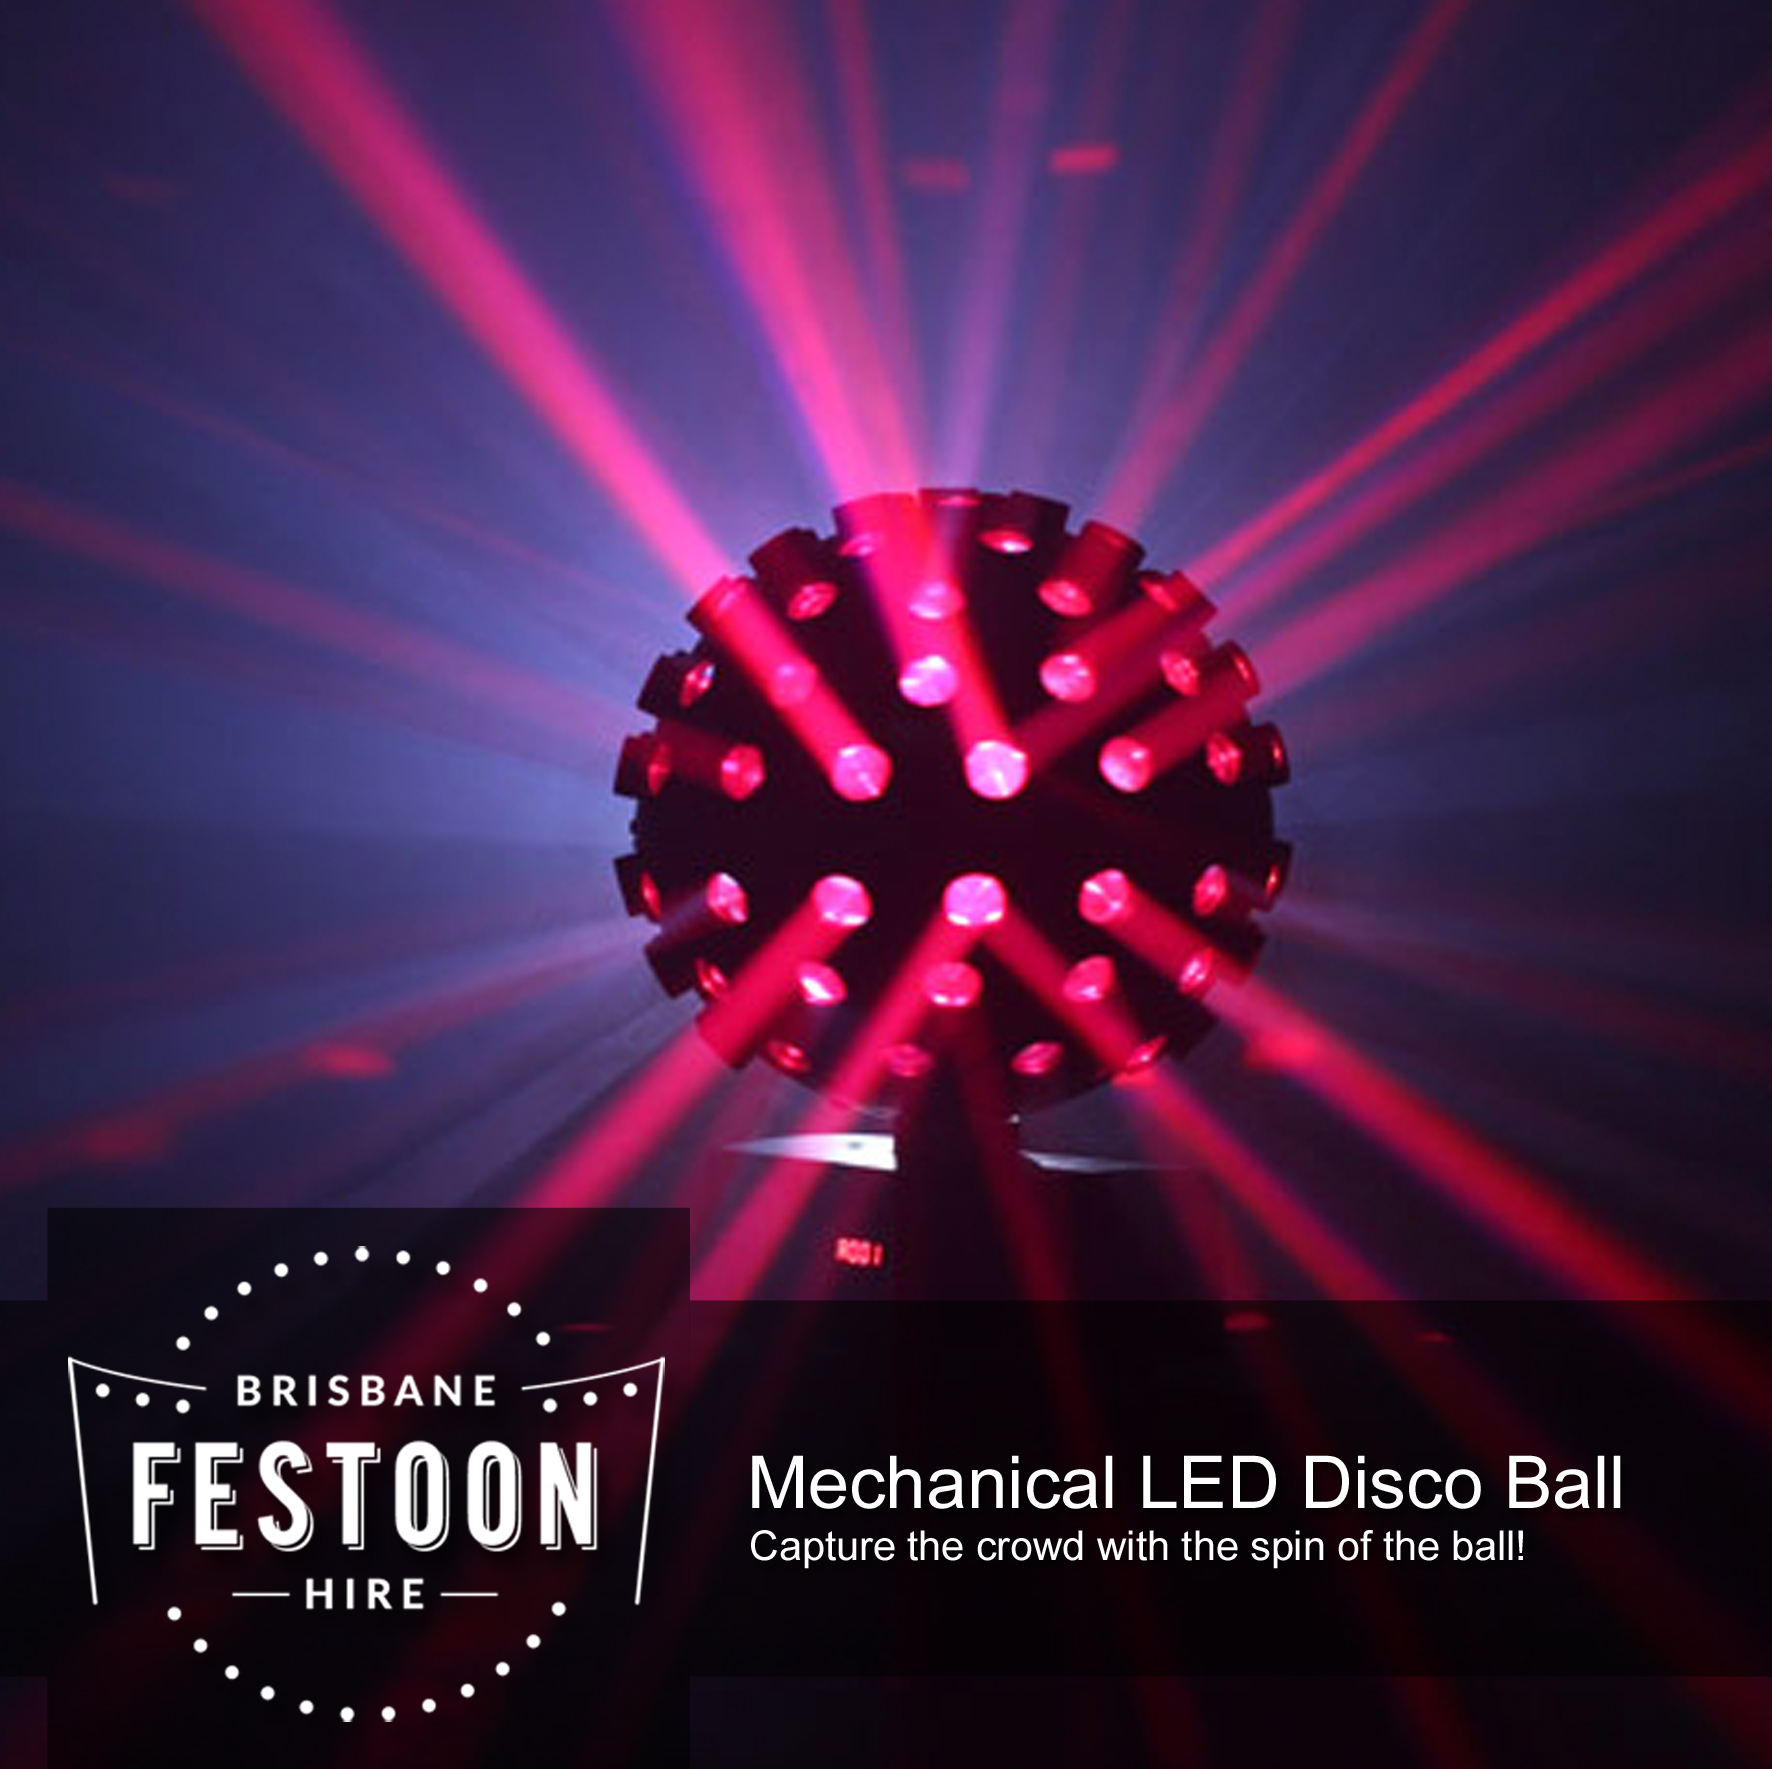 Brisbane LED Disco Light Hire 4.jpg